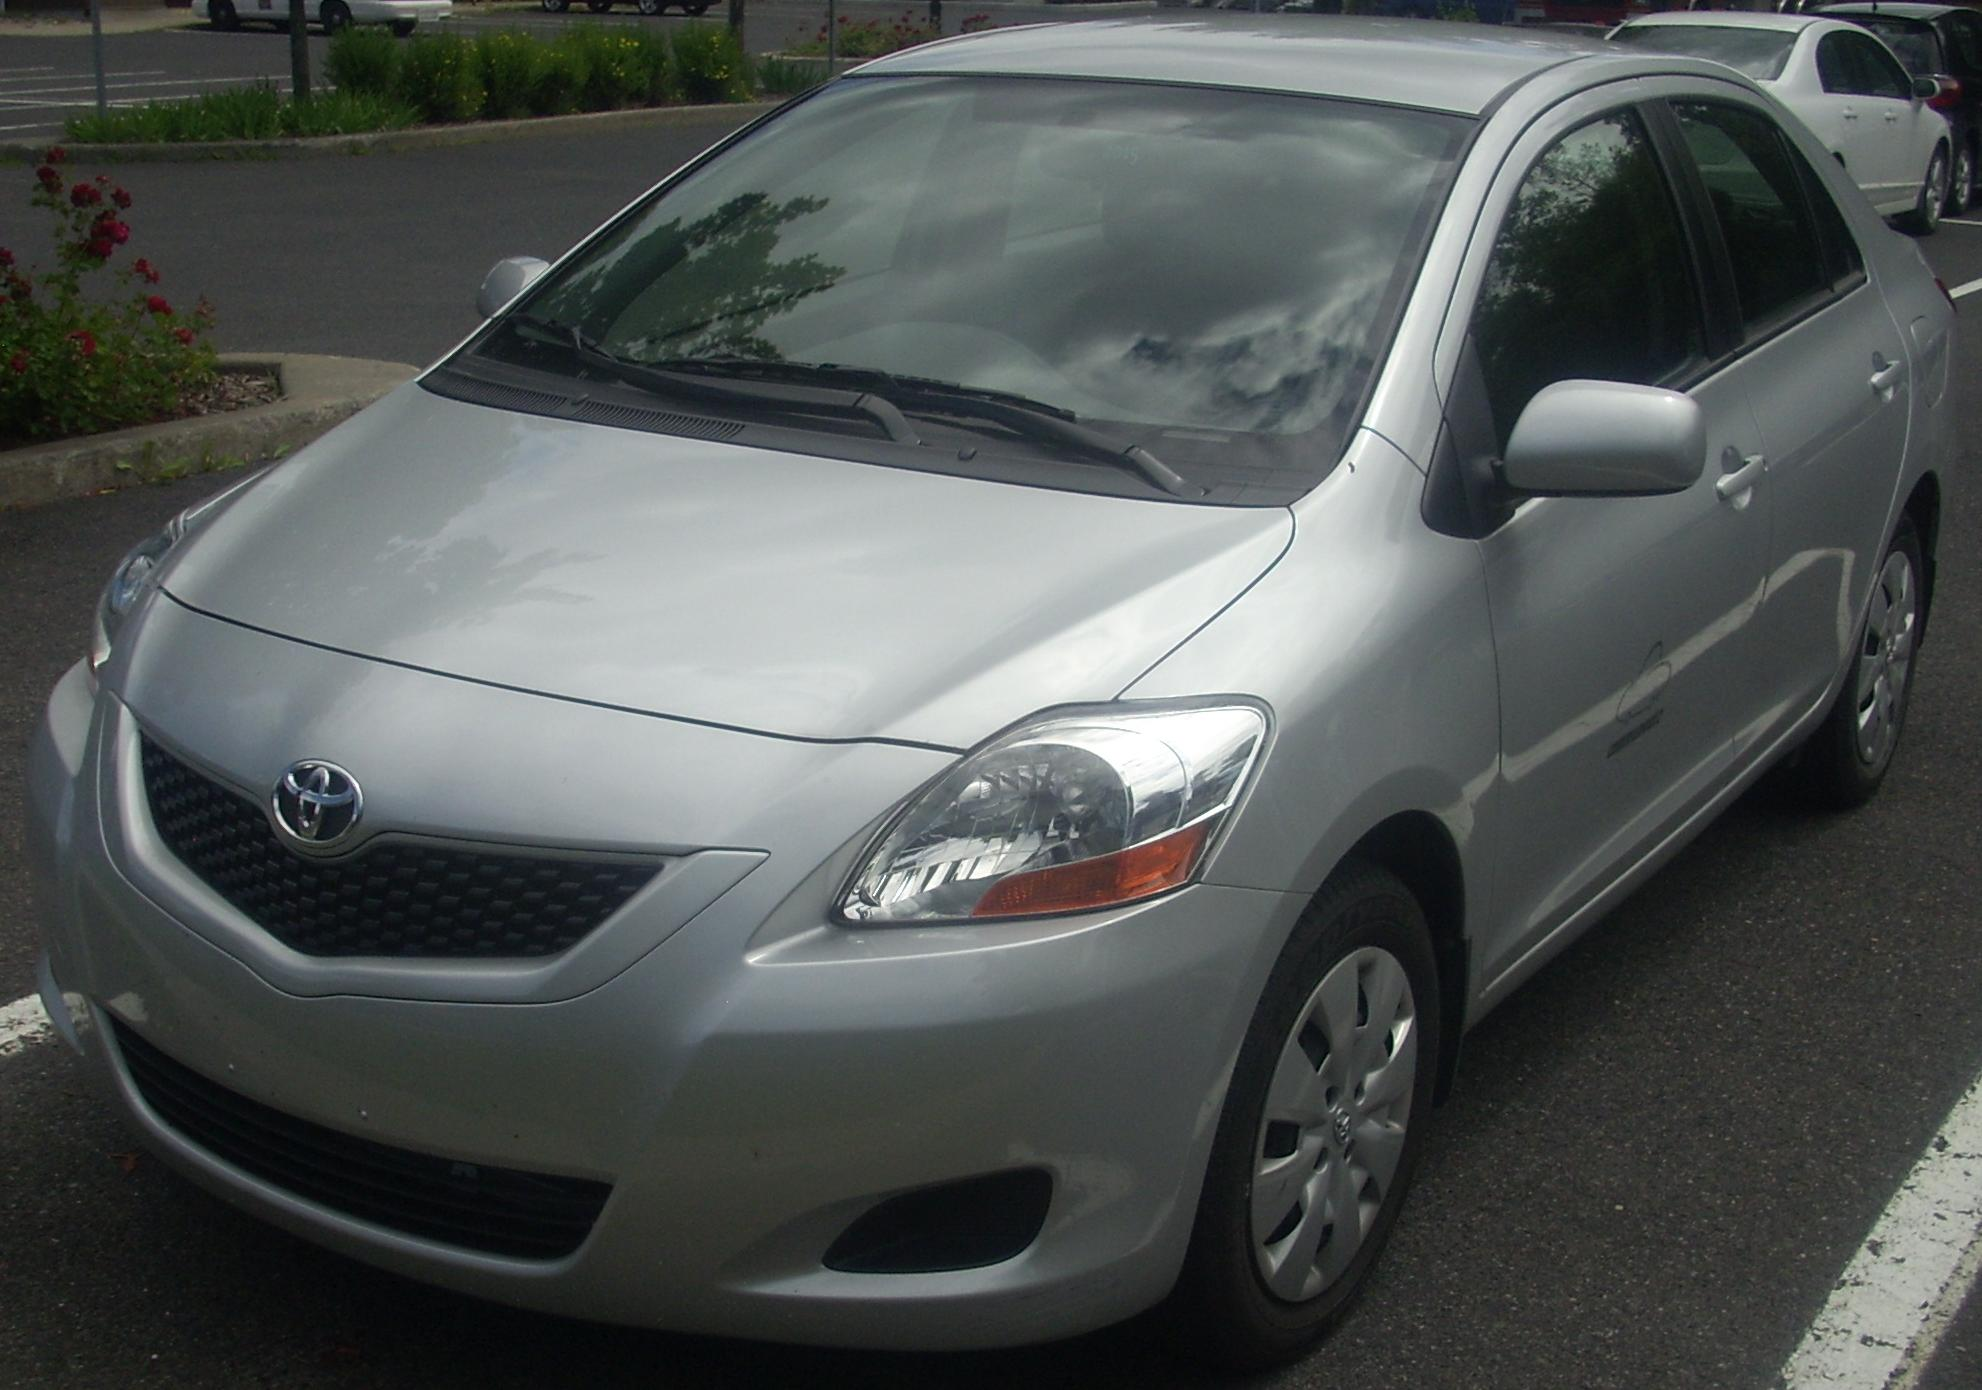 2011 toyota yaris sedan xp9 pictures information and specs auto. Black Bedroom Furniture Sets. Home Design Ideas